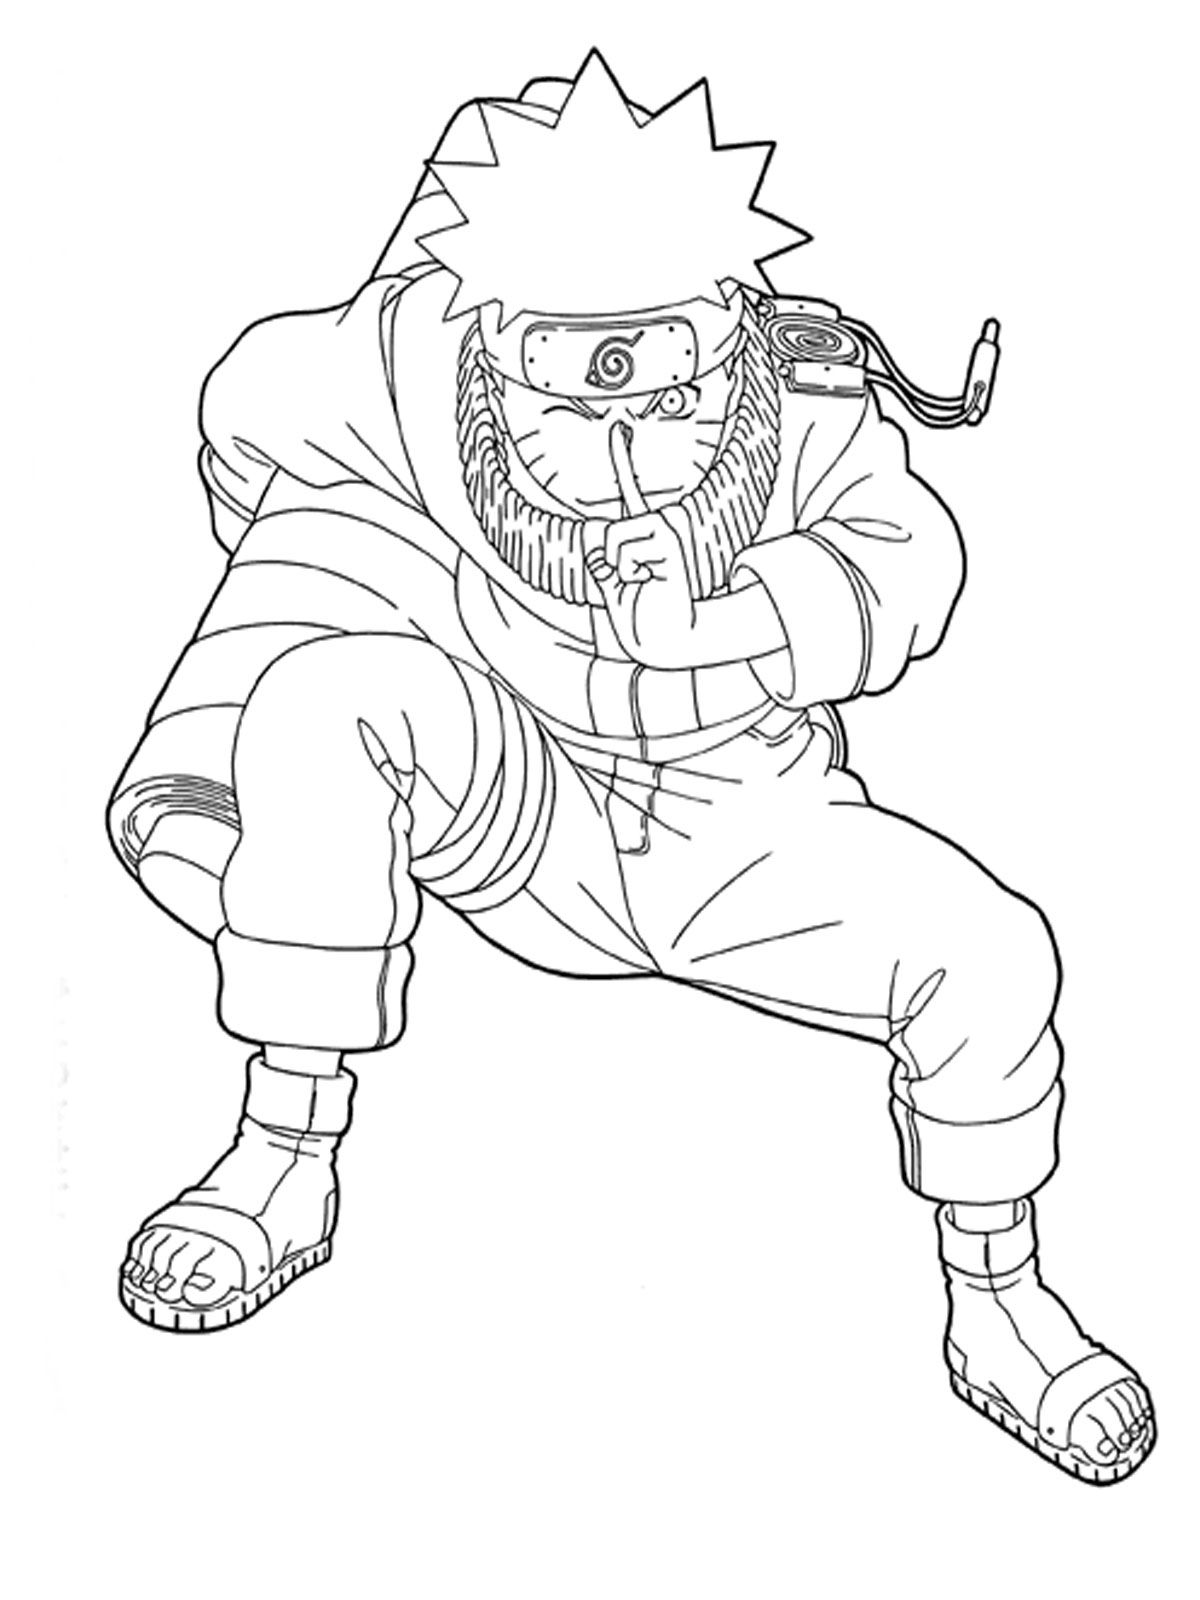 Free Printable Naruto Shippuden Coloring Pages, Download